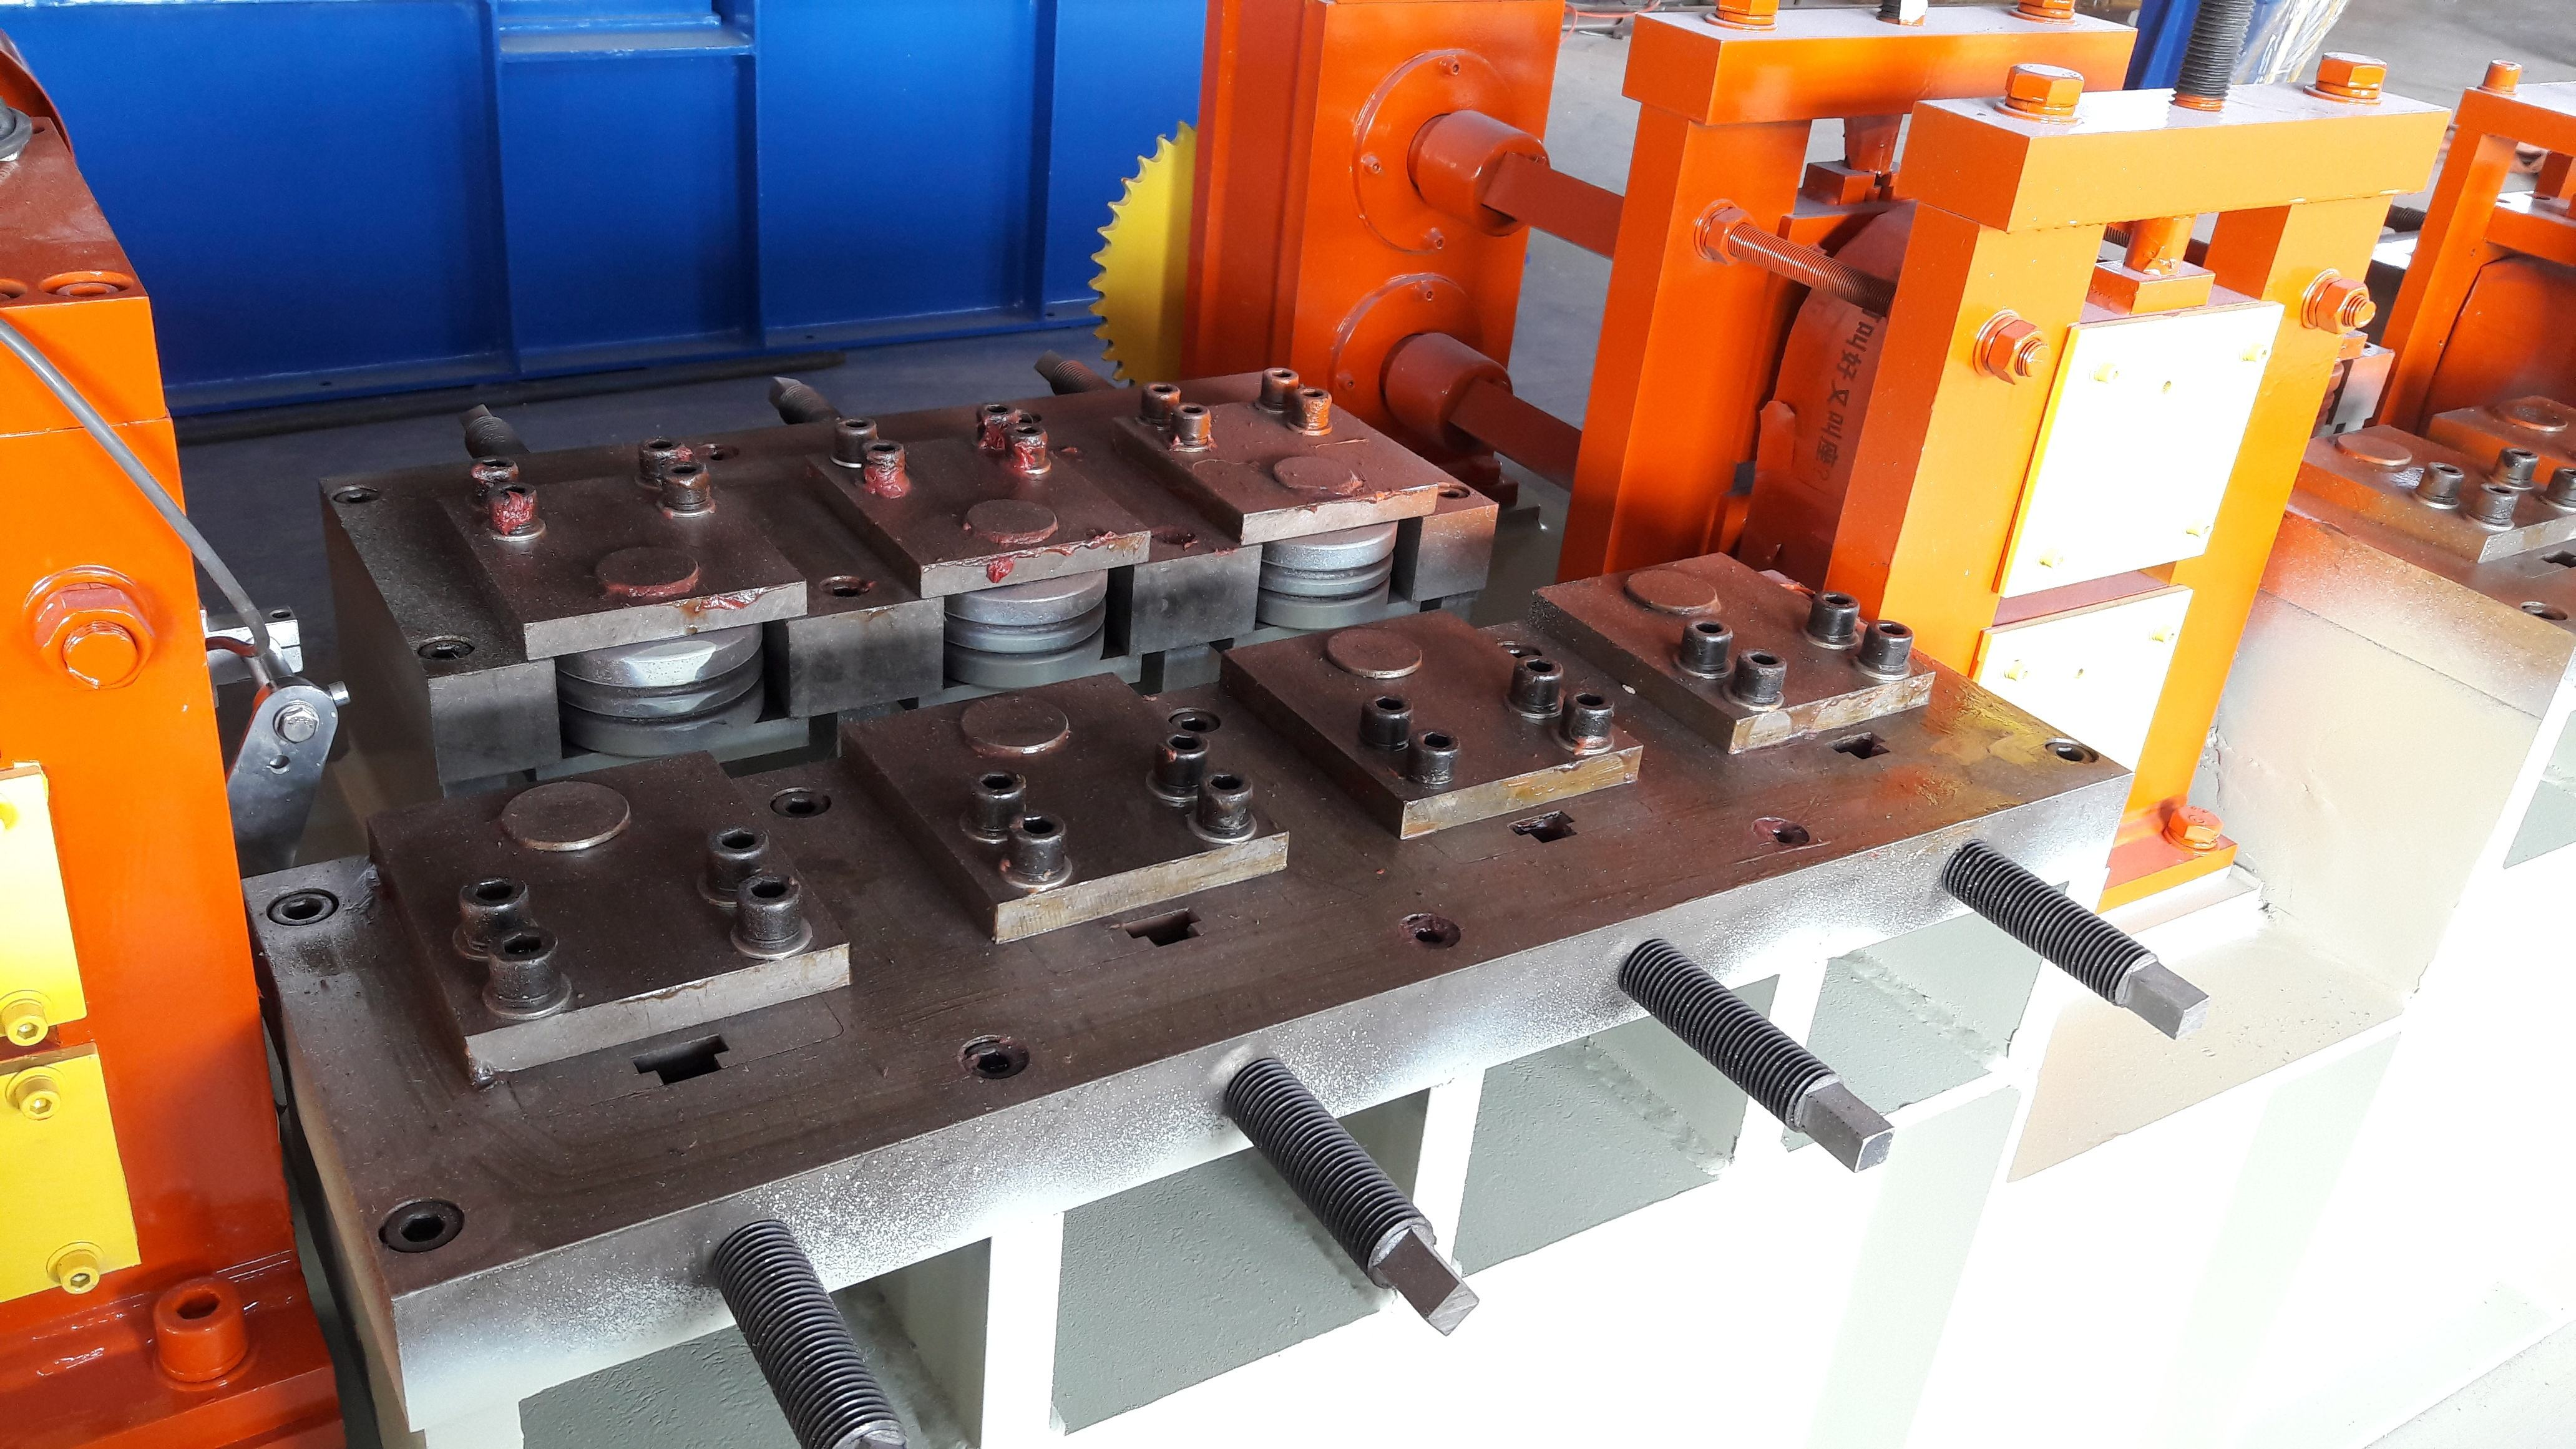 2-6x100 carbon steel flat bar chamfering, deburring and cutting machine